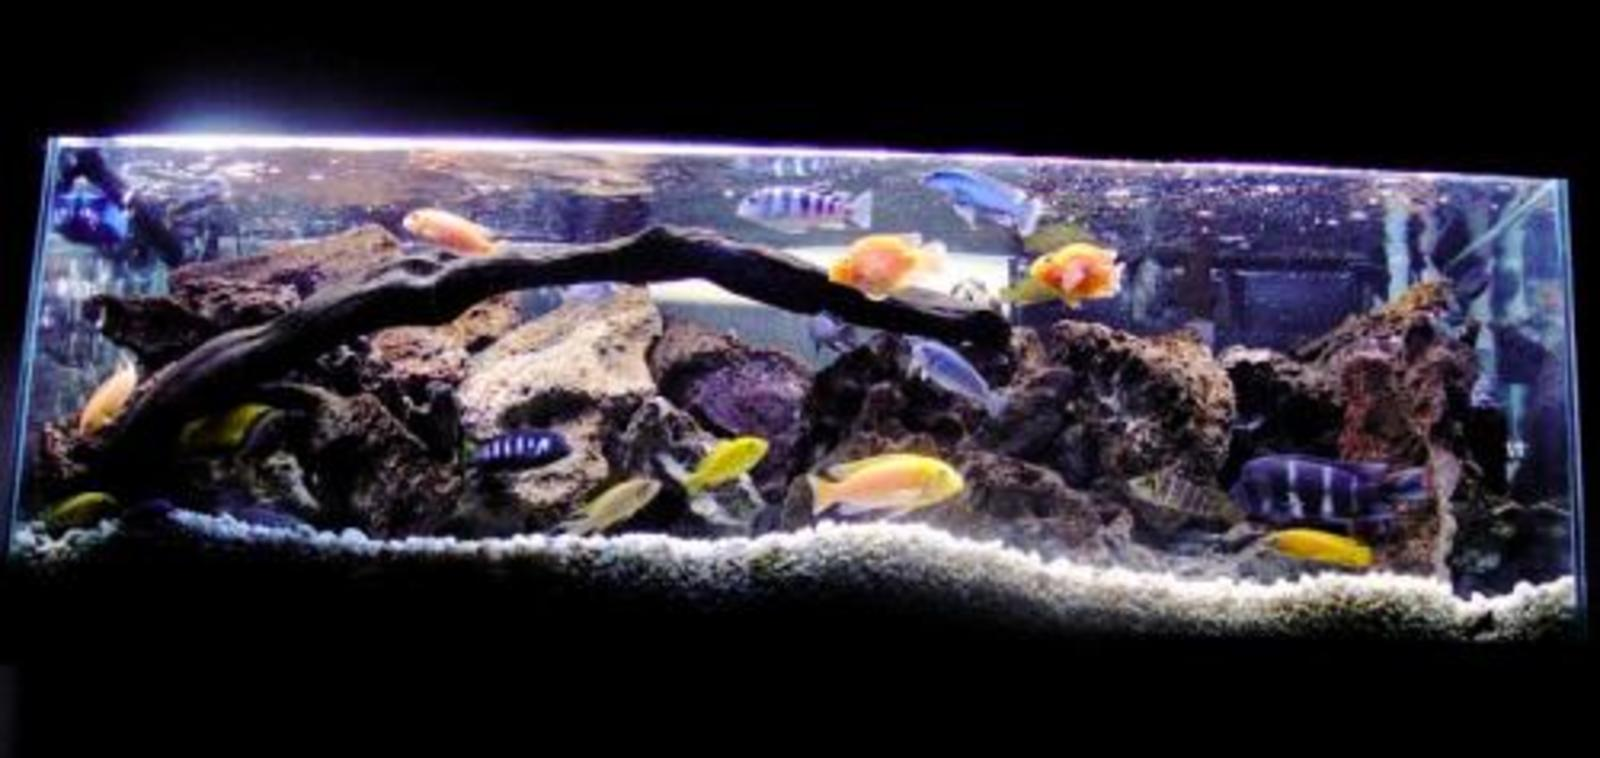 The Cichlid Combo